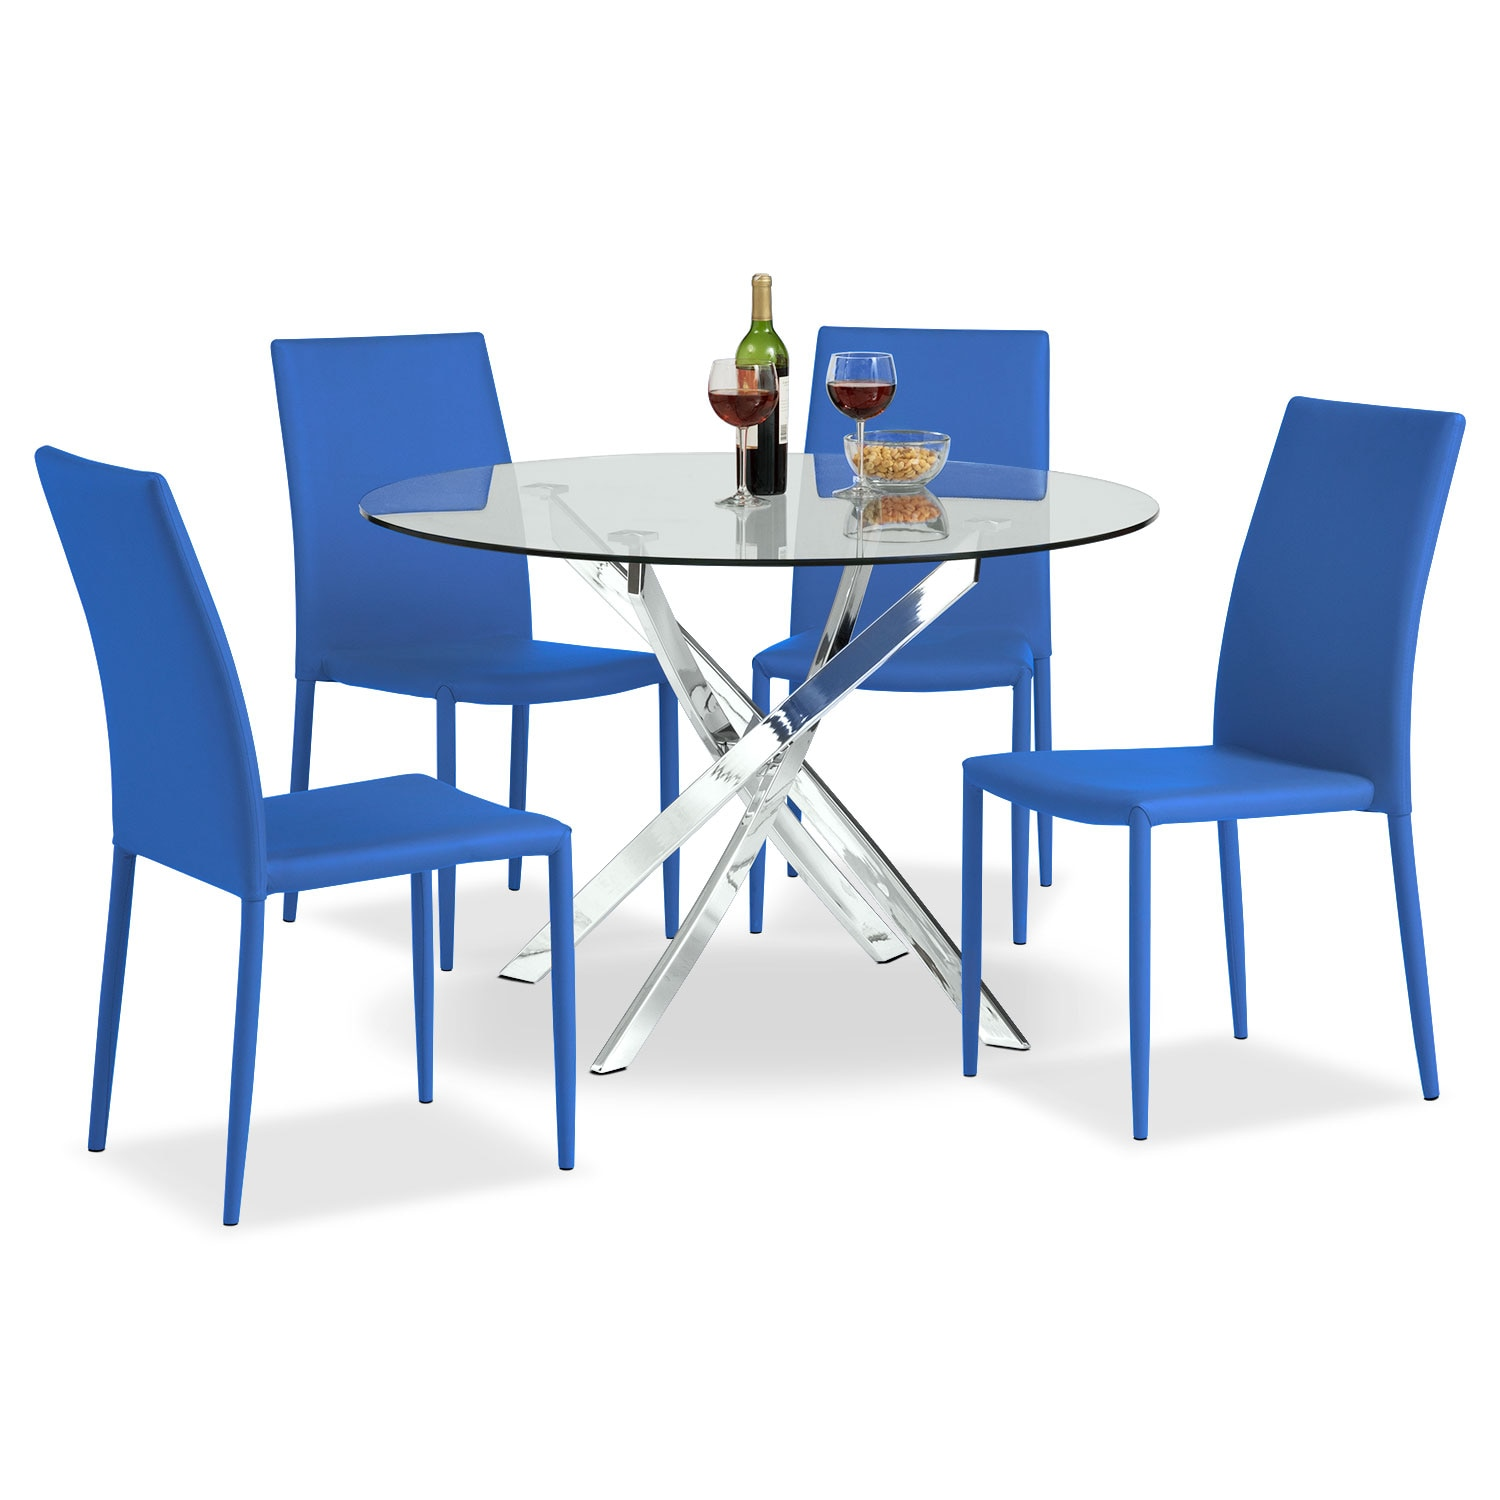 Quattro Table and 4 Chairs - Blue